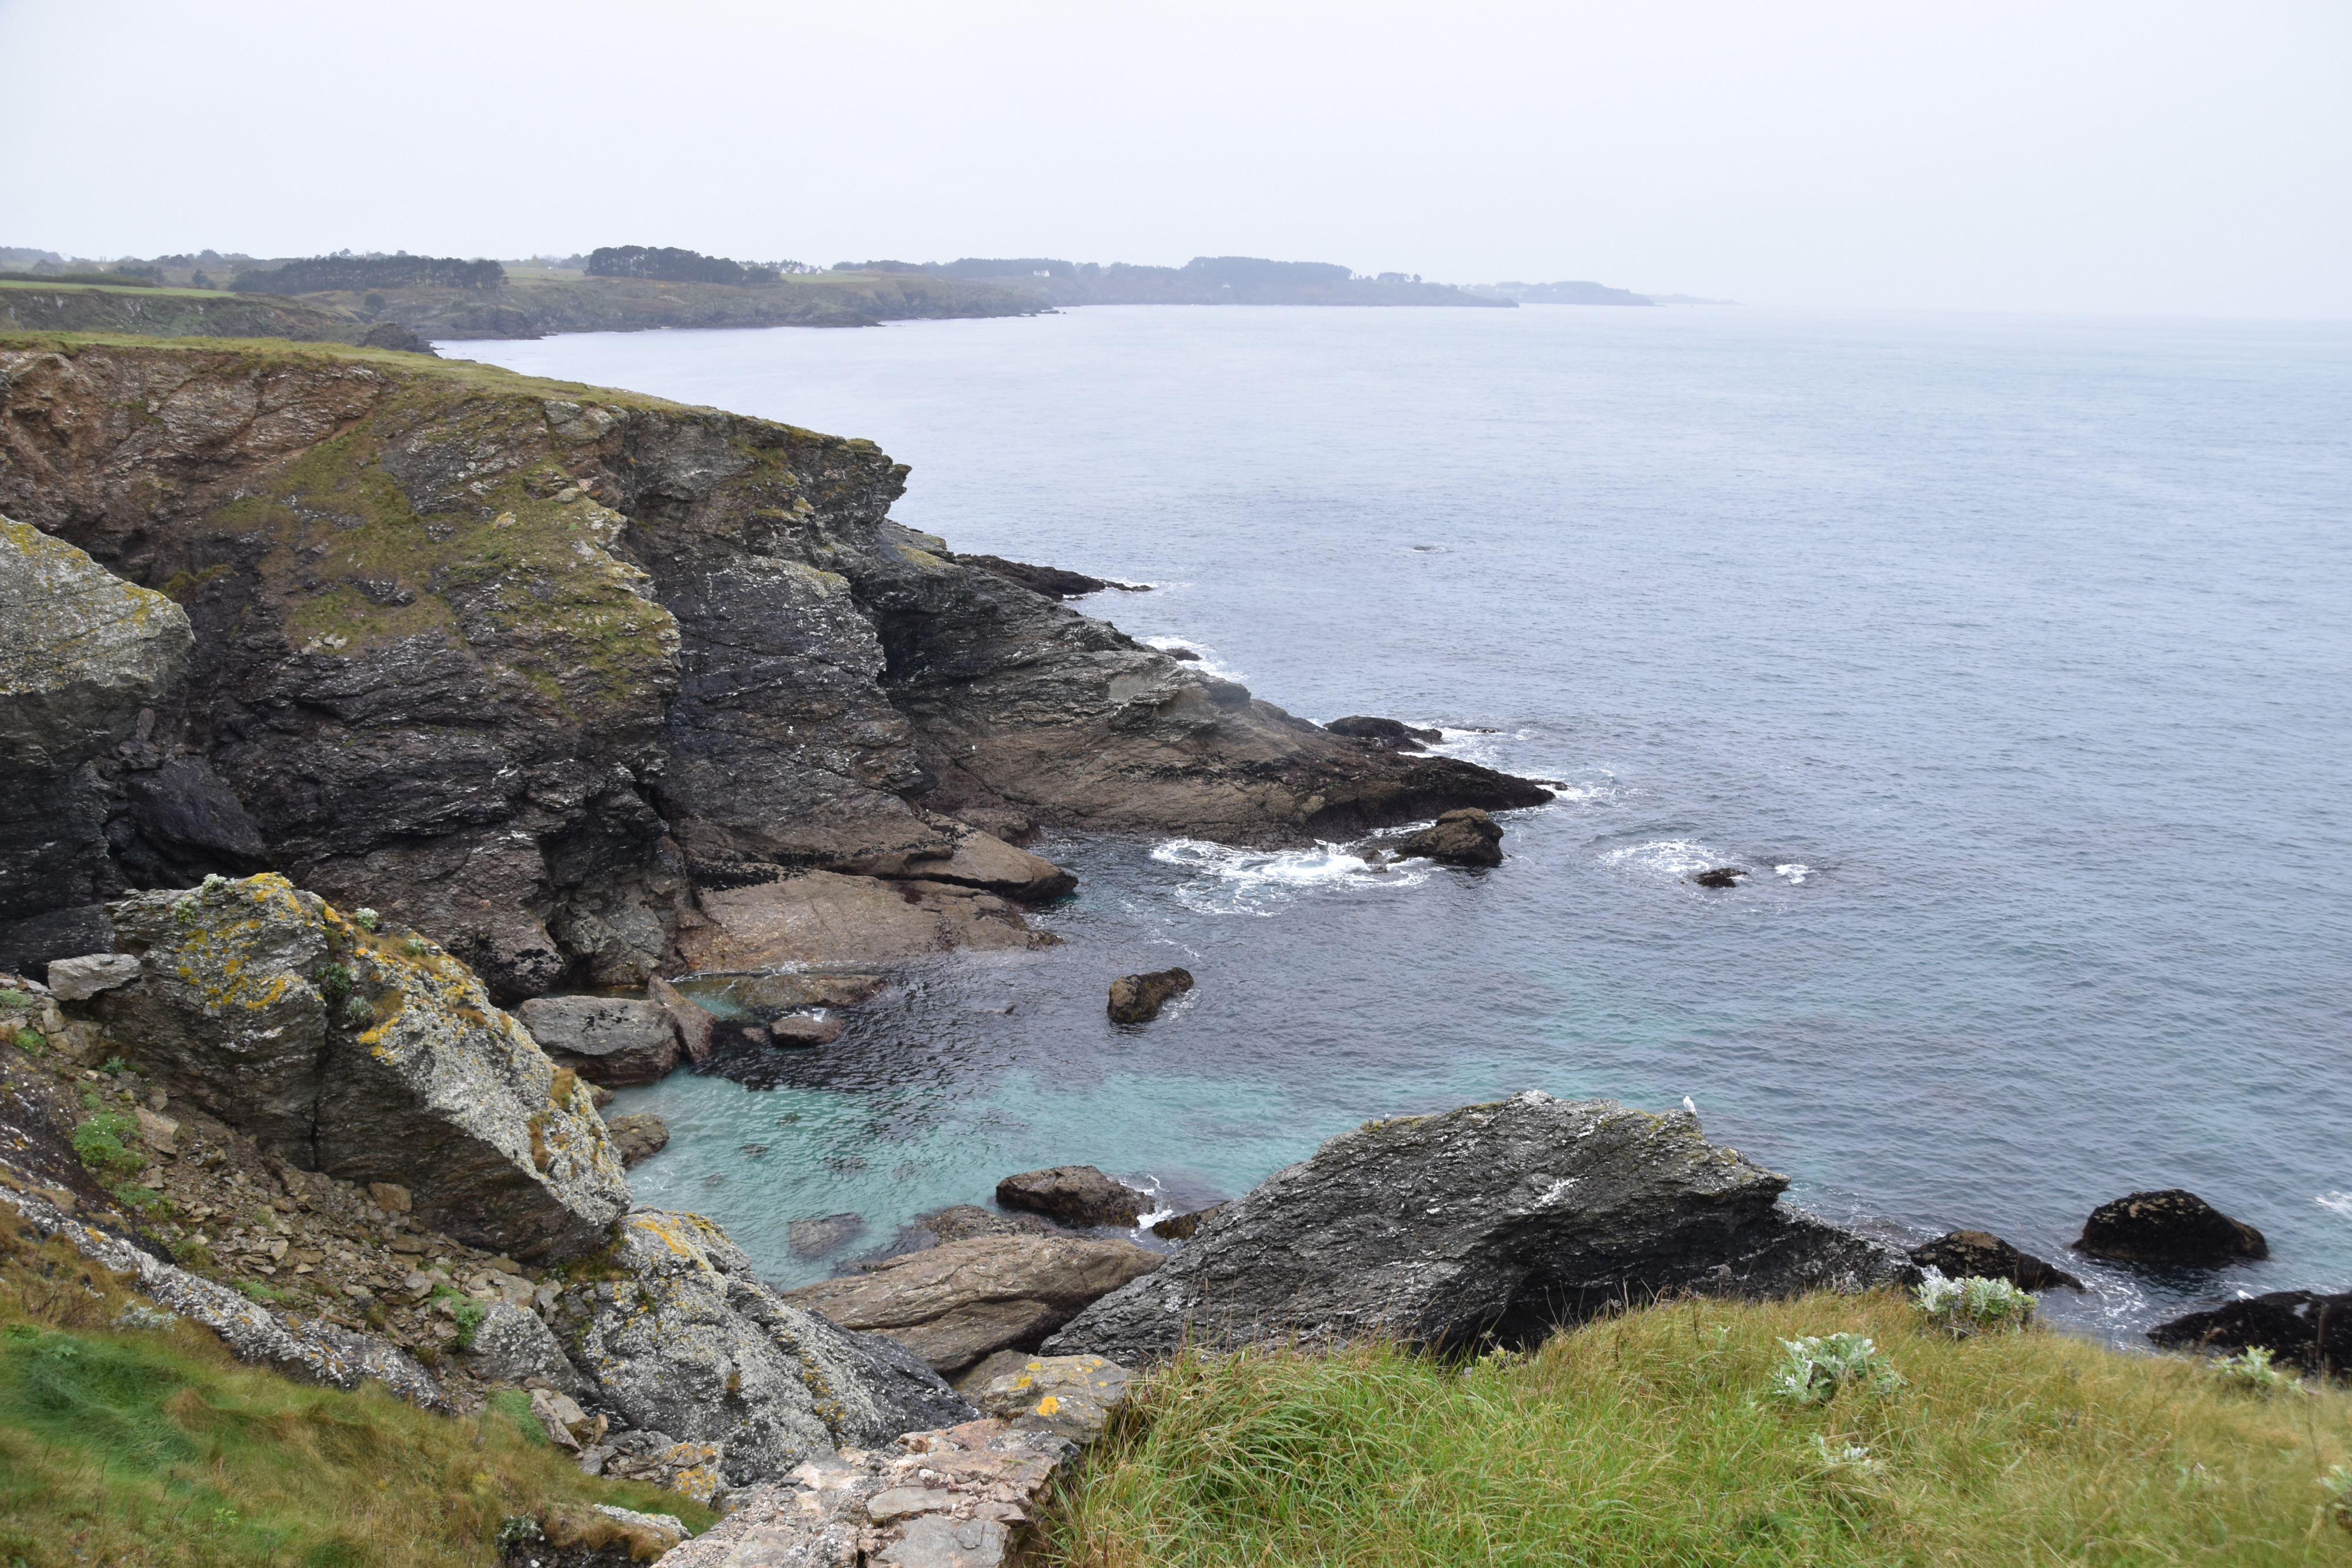 Pointe de Taillefer